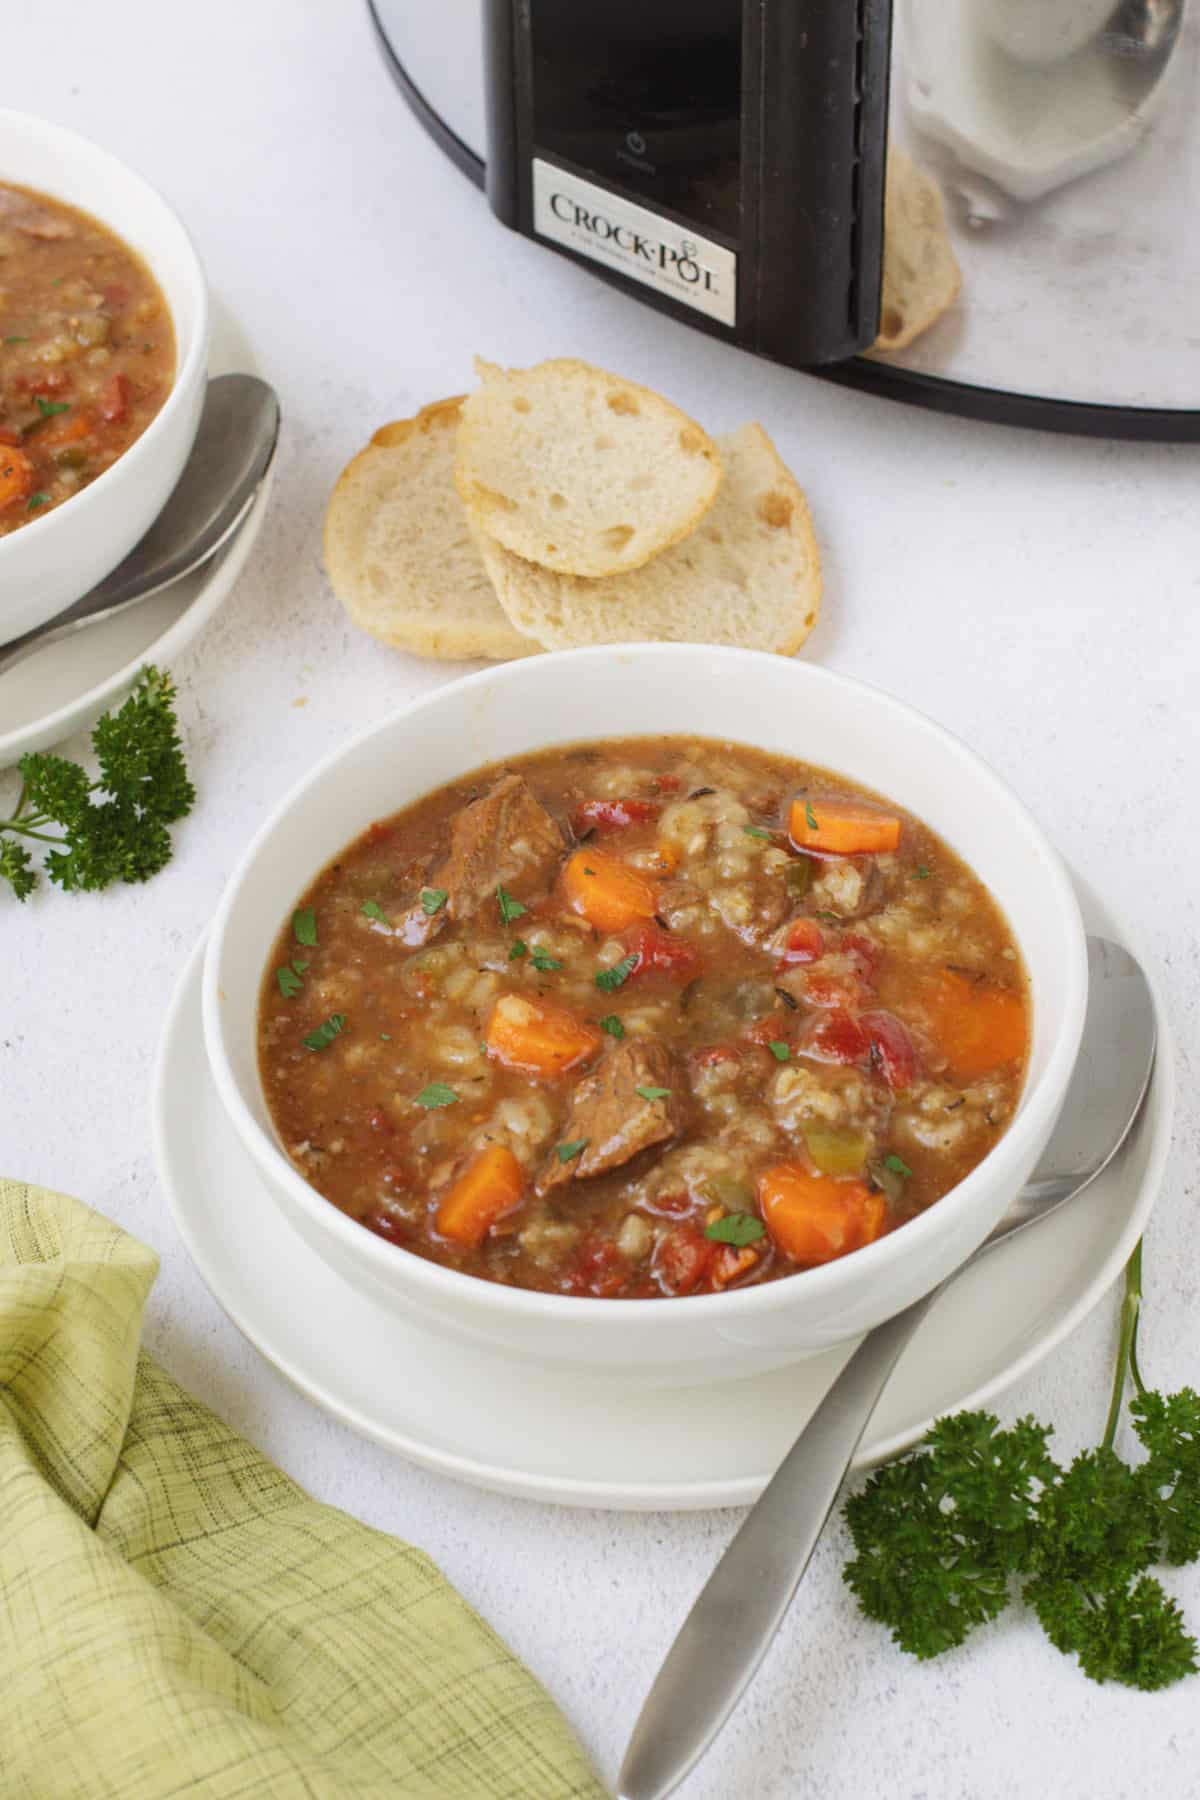 White bowl of beef and vegetable soup with spoon on plate and extra serving, slices of bread and slow cooker in upper background and parsley and green linen in lower background.